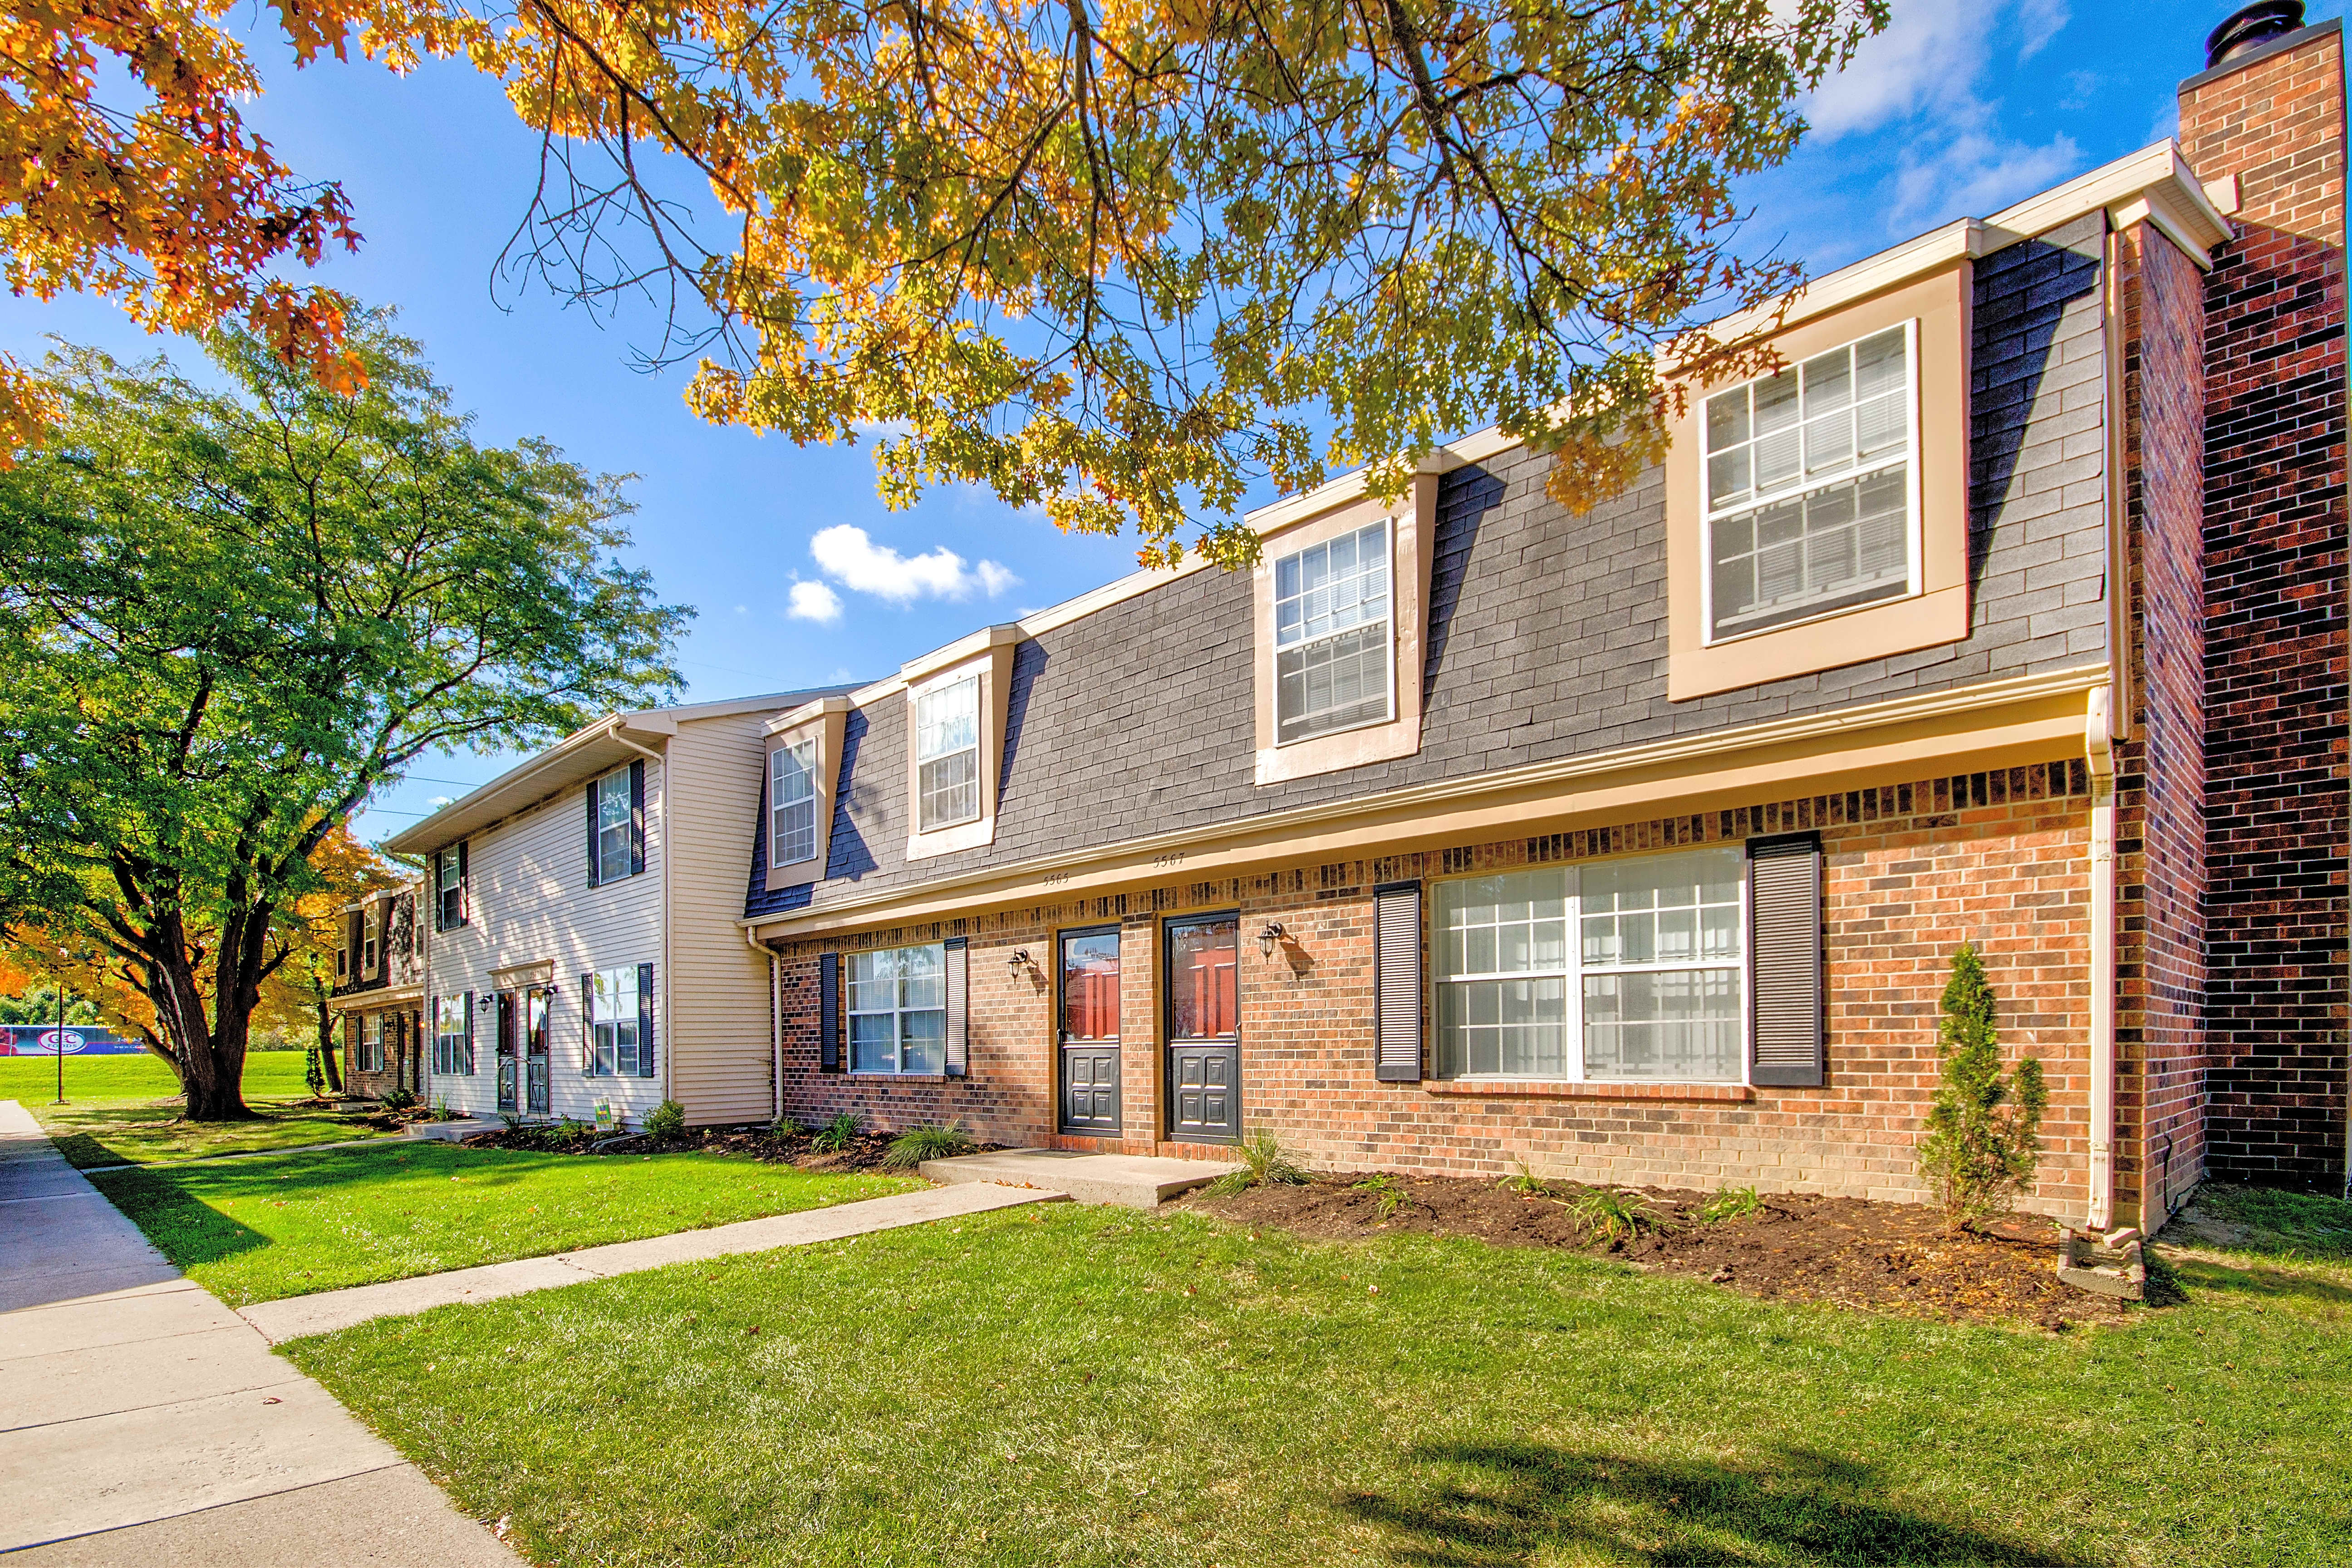 Apartments Near BGSU Briarwood of Toledo for Bowling Green State University Students in Bowling Green, OH